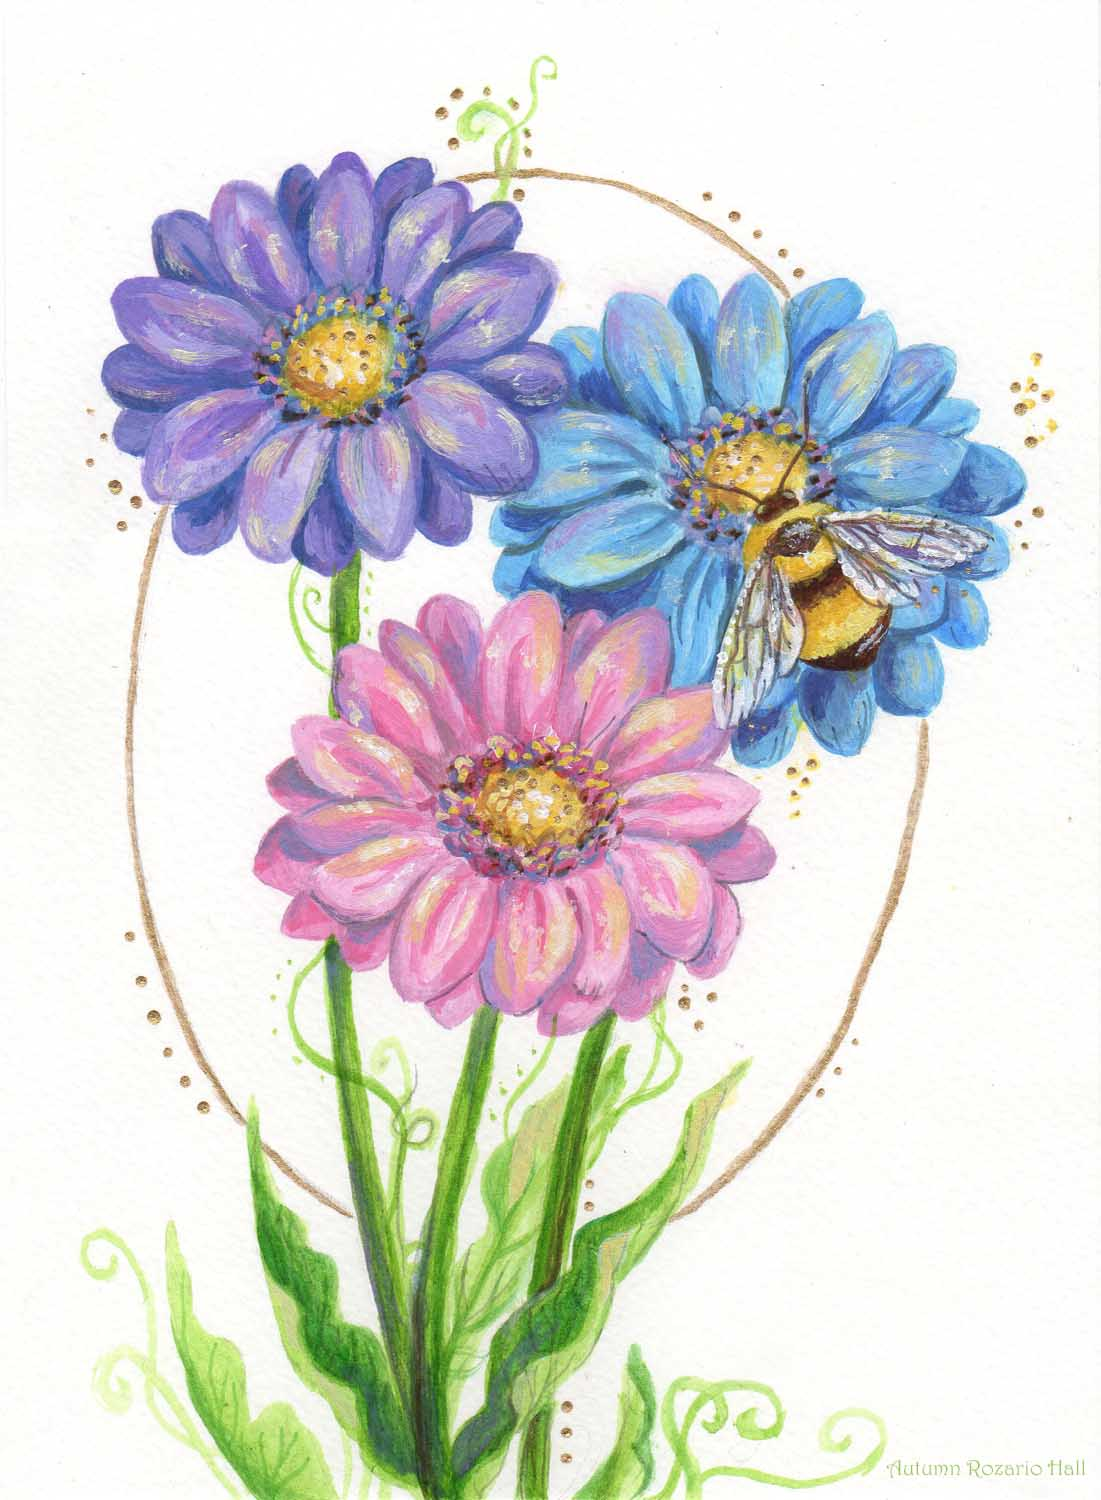 Bumblebee and Gerbera Daisies